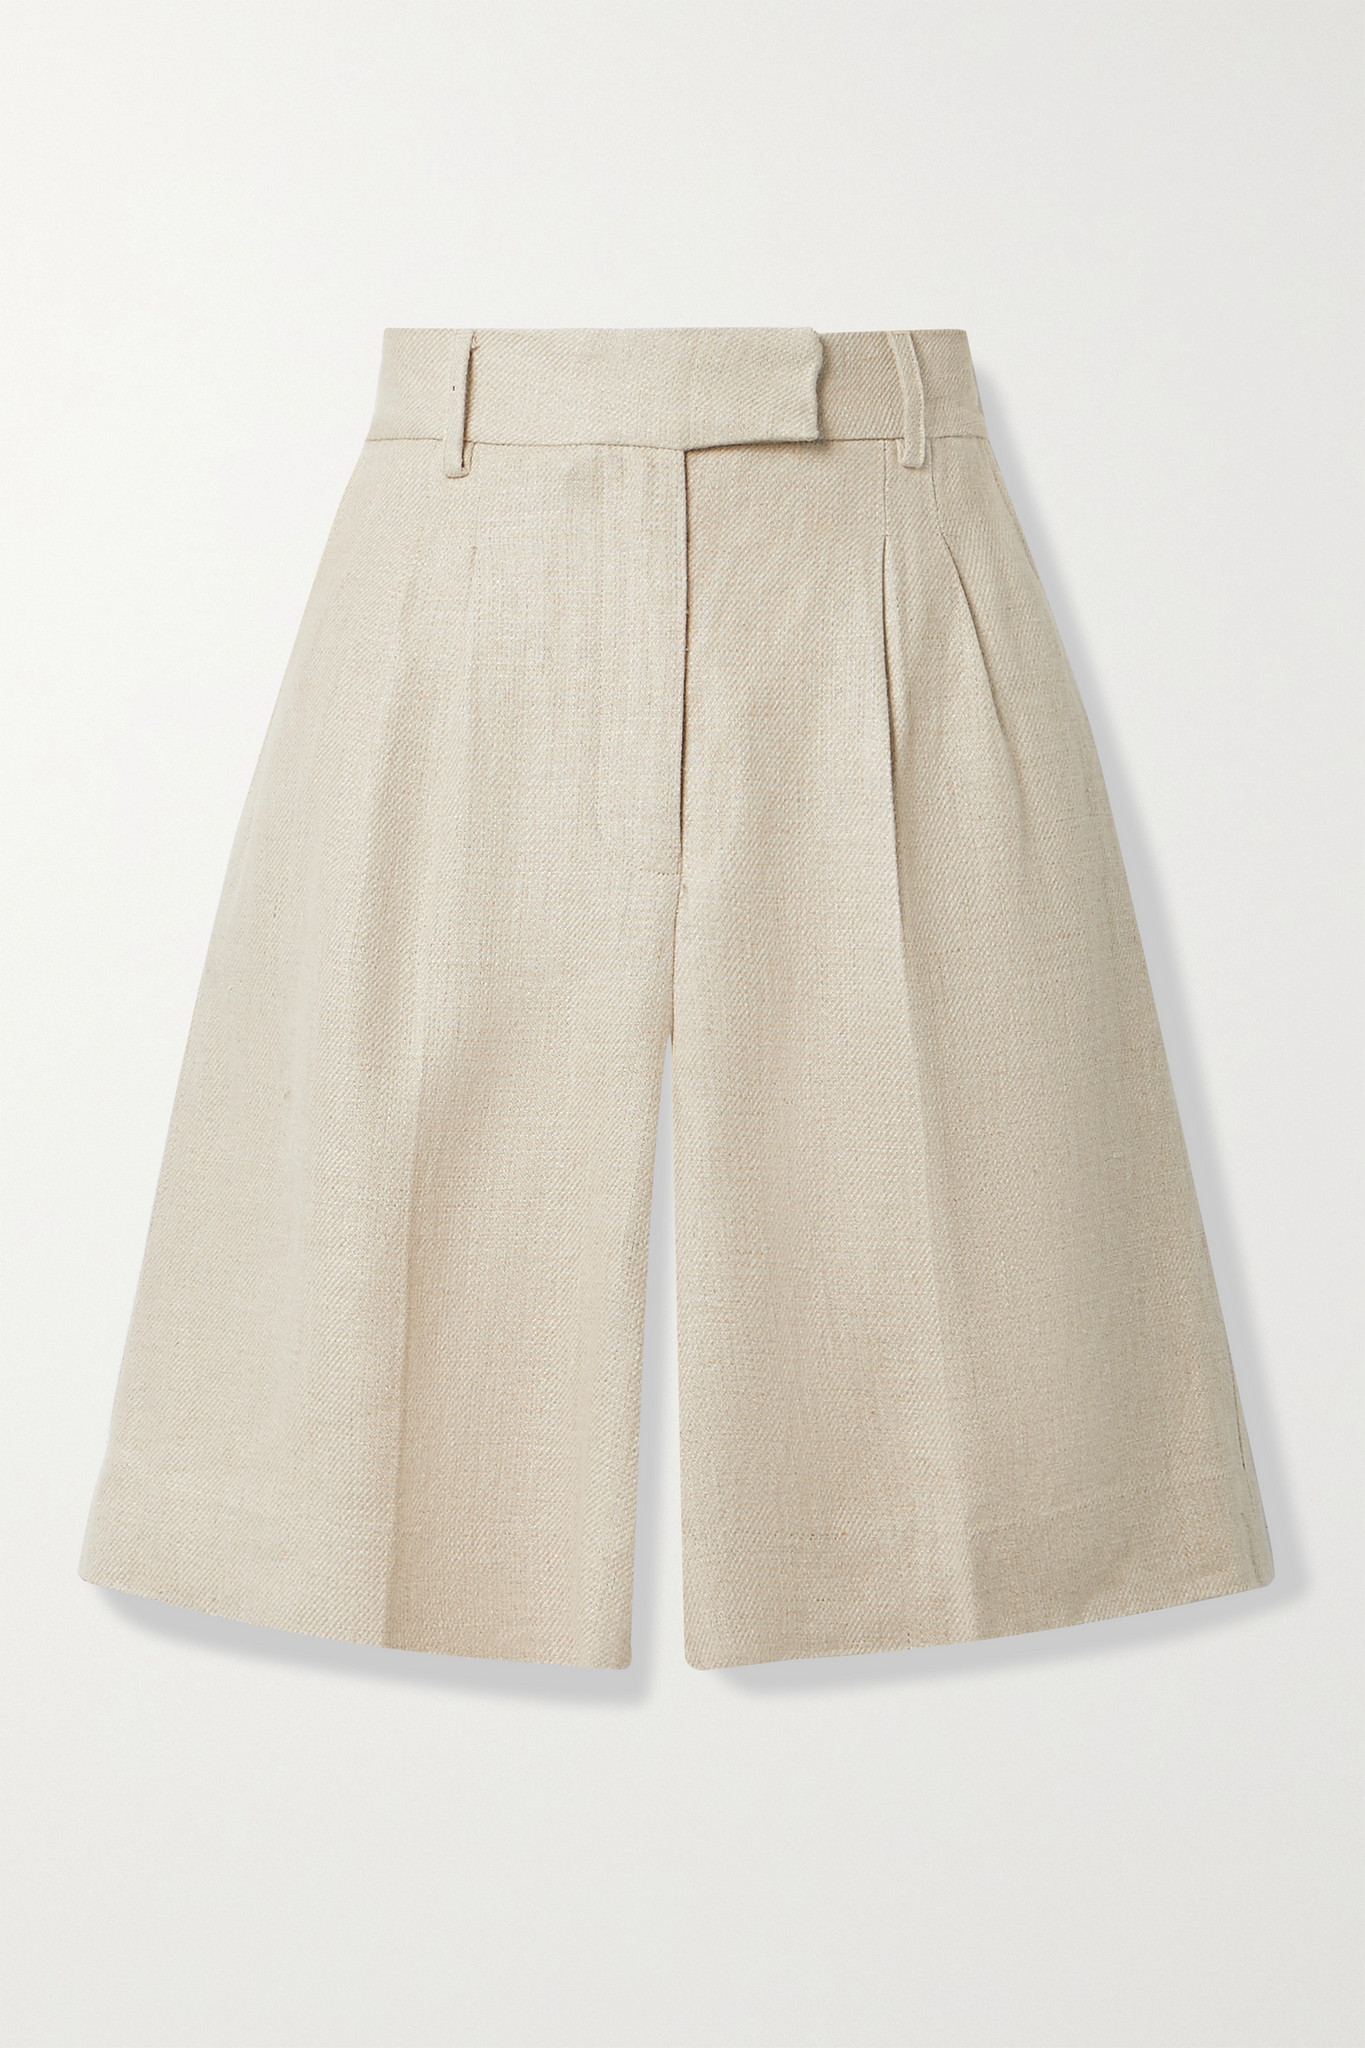 REMAIN BIRGER CHRISTENSEN - Kit Pleated Linen Shorts - Neutrals - DK36